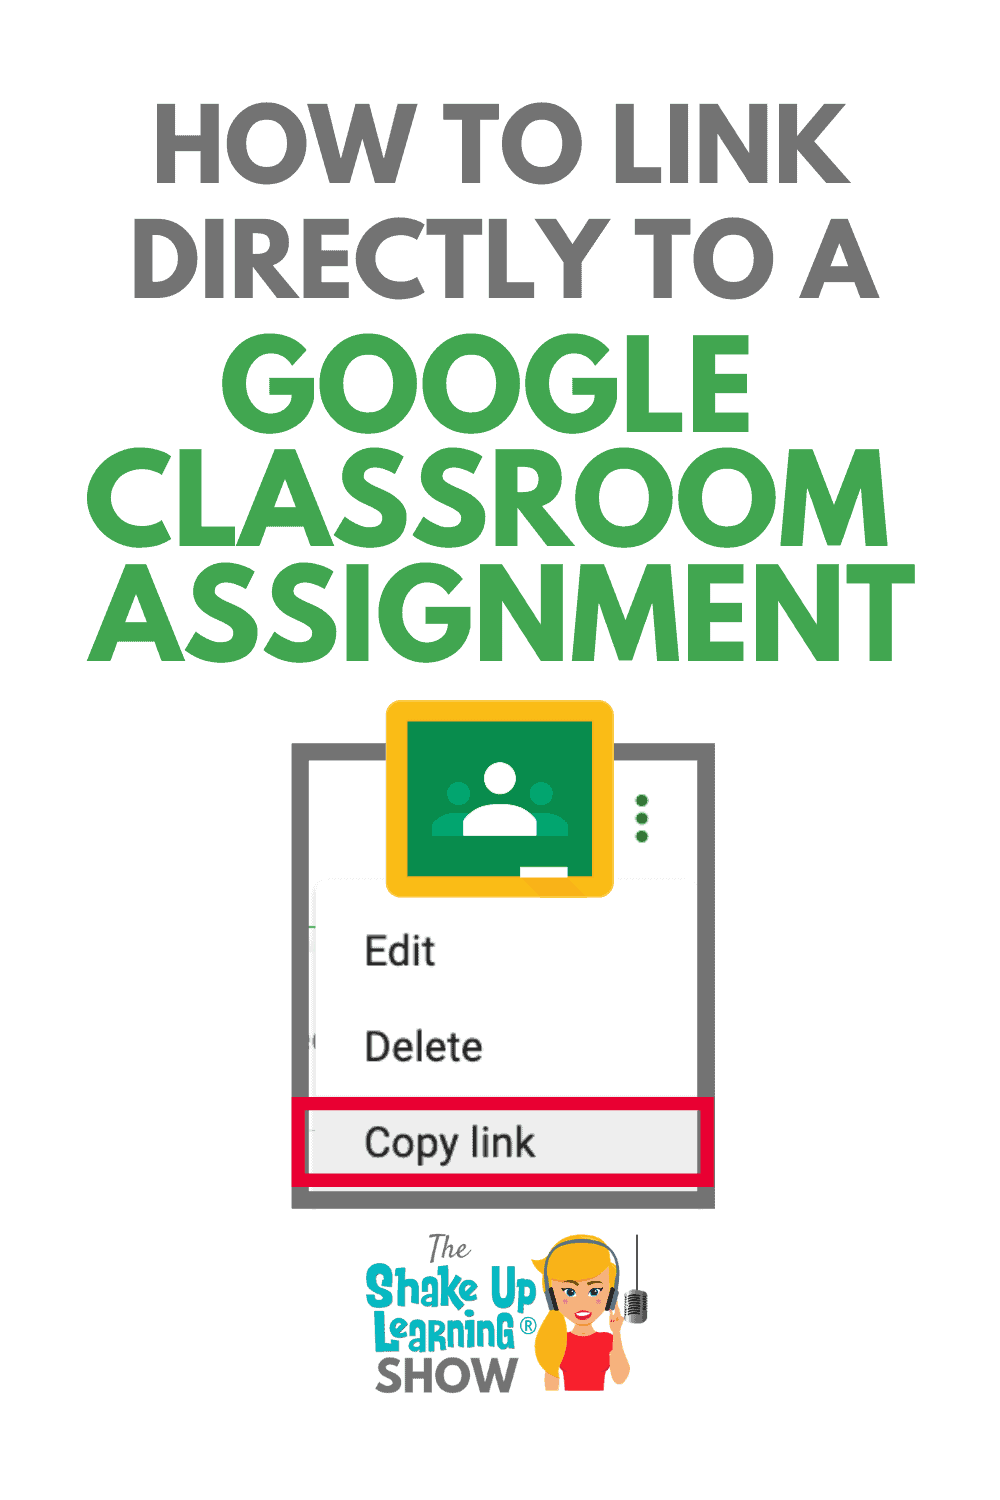 How to Link Directly to a Google Classroom Assignment